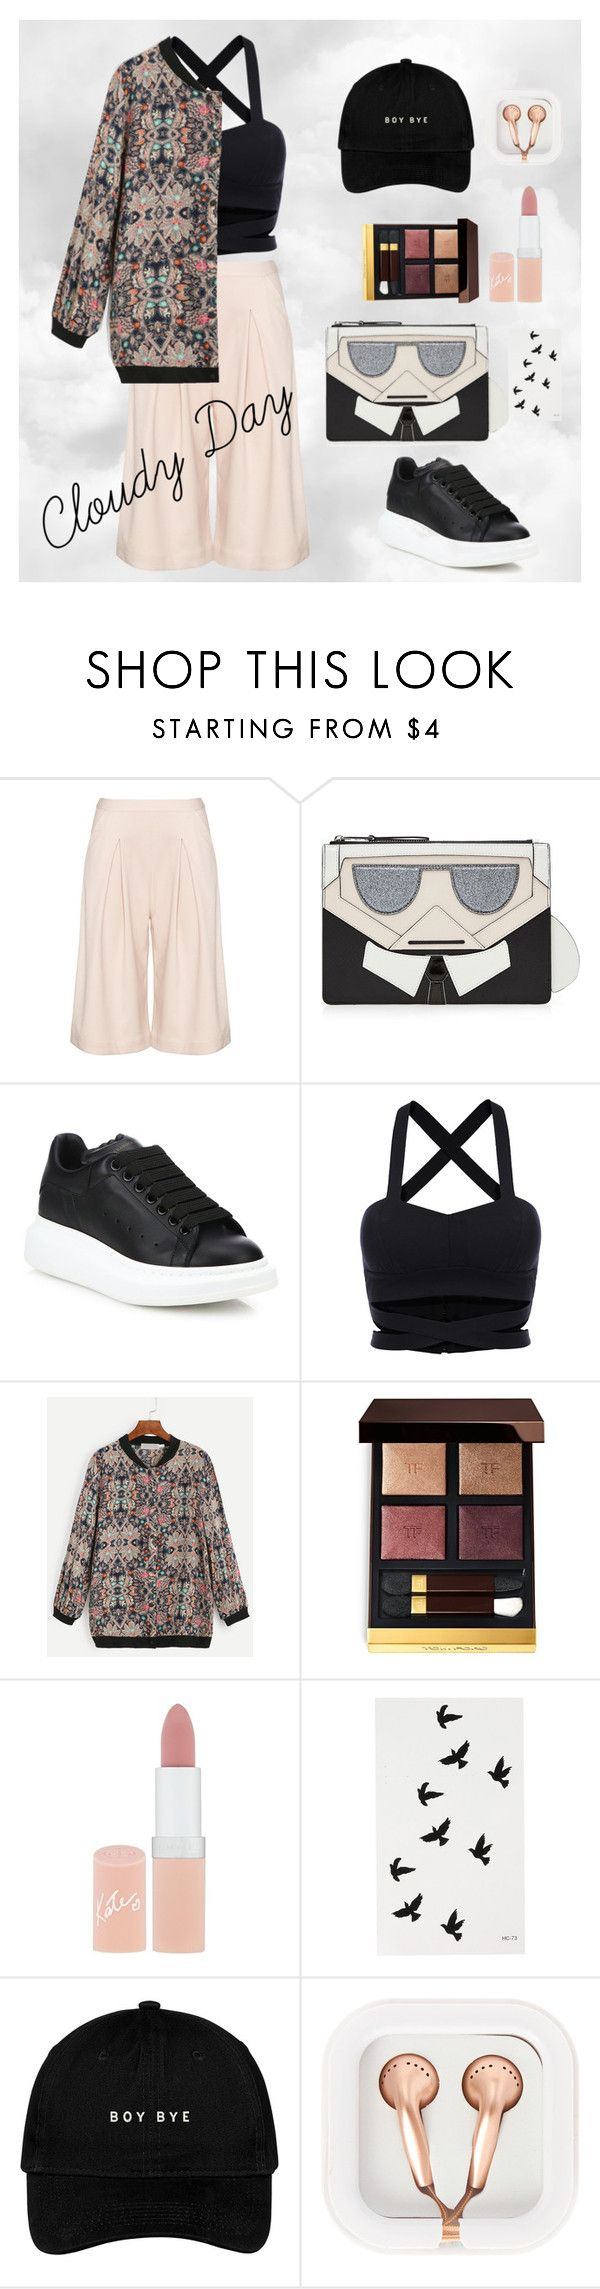 Cloudy Day Outfit by ghiocelalexandra on Polyvore featuring Manon Baptiste, Alexander McQueen, Karl Lagerfeld, claire's, Rimmel and Tom Ford